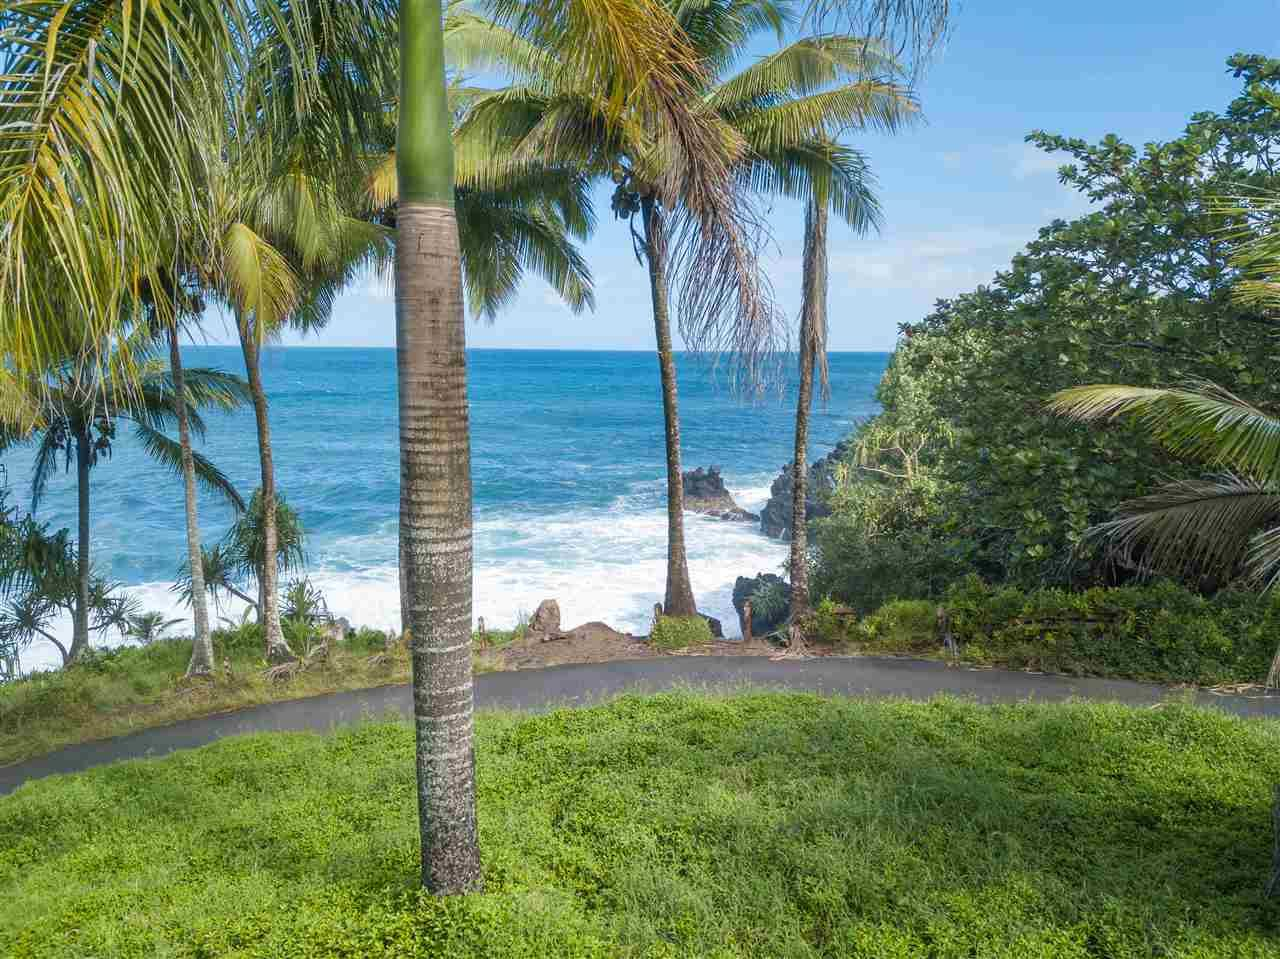 Photo of 0 Nahiku Rd, Hana, HI 96713 (MLS # 386176)